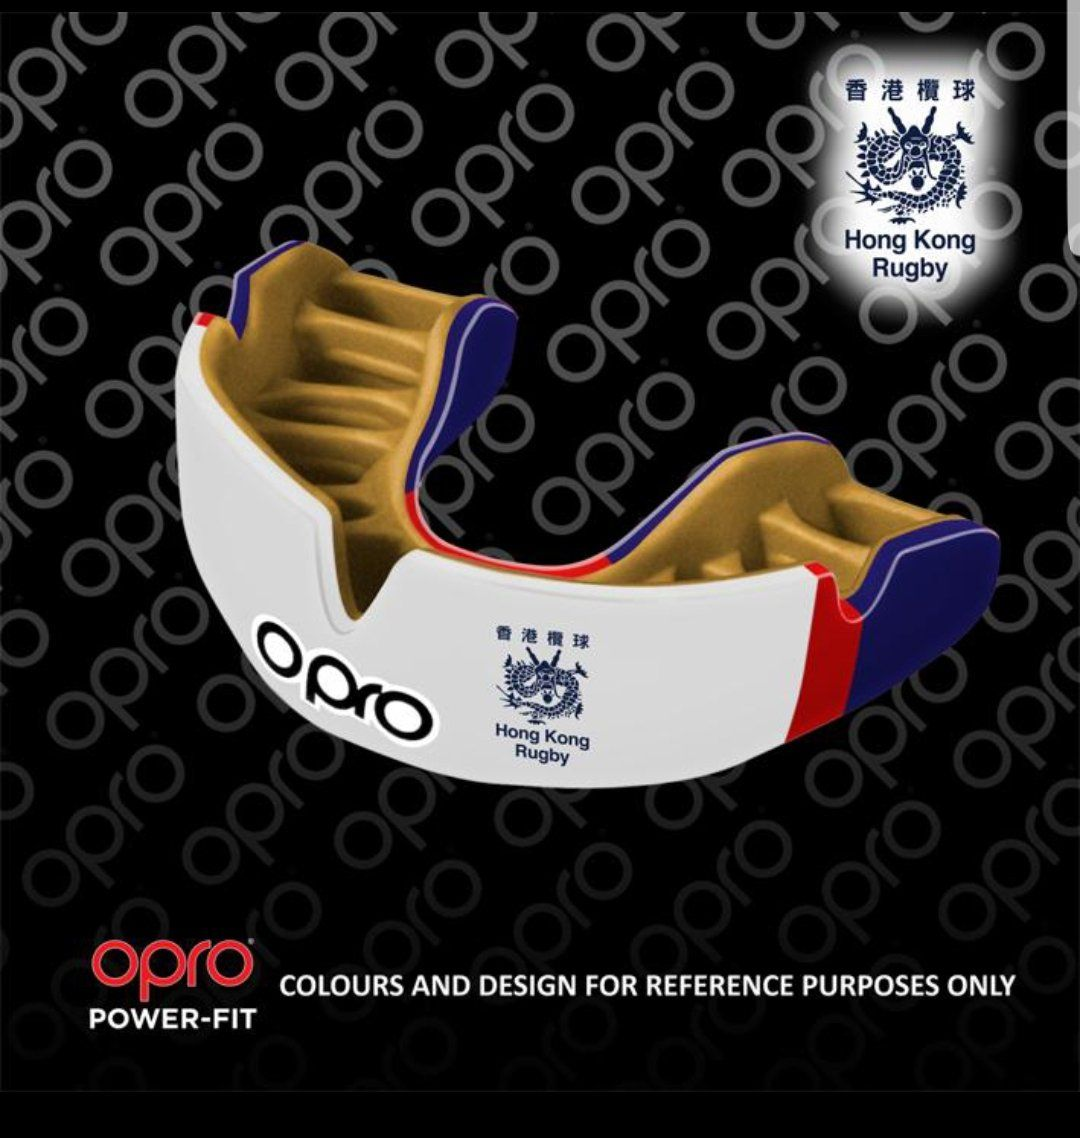 Opro Power-Fit Mouthguard - Rugby Union